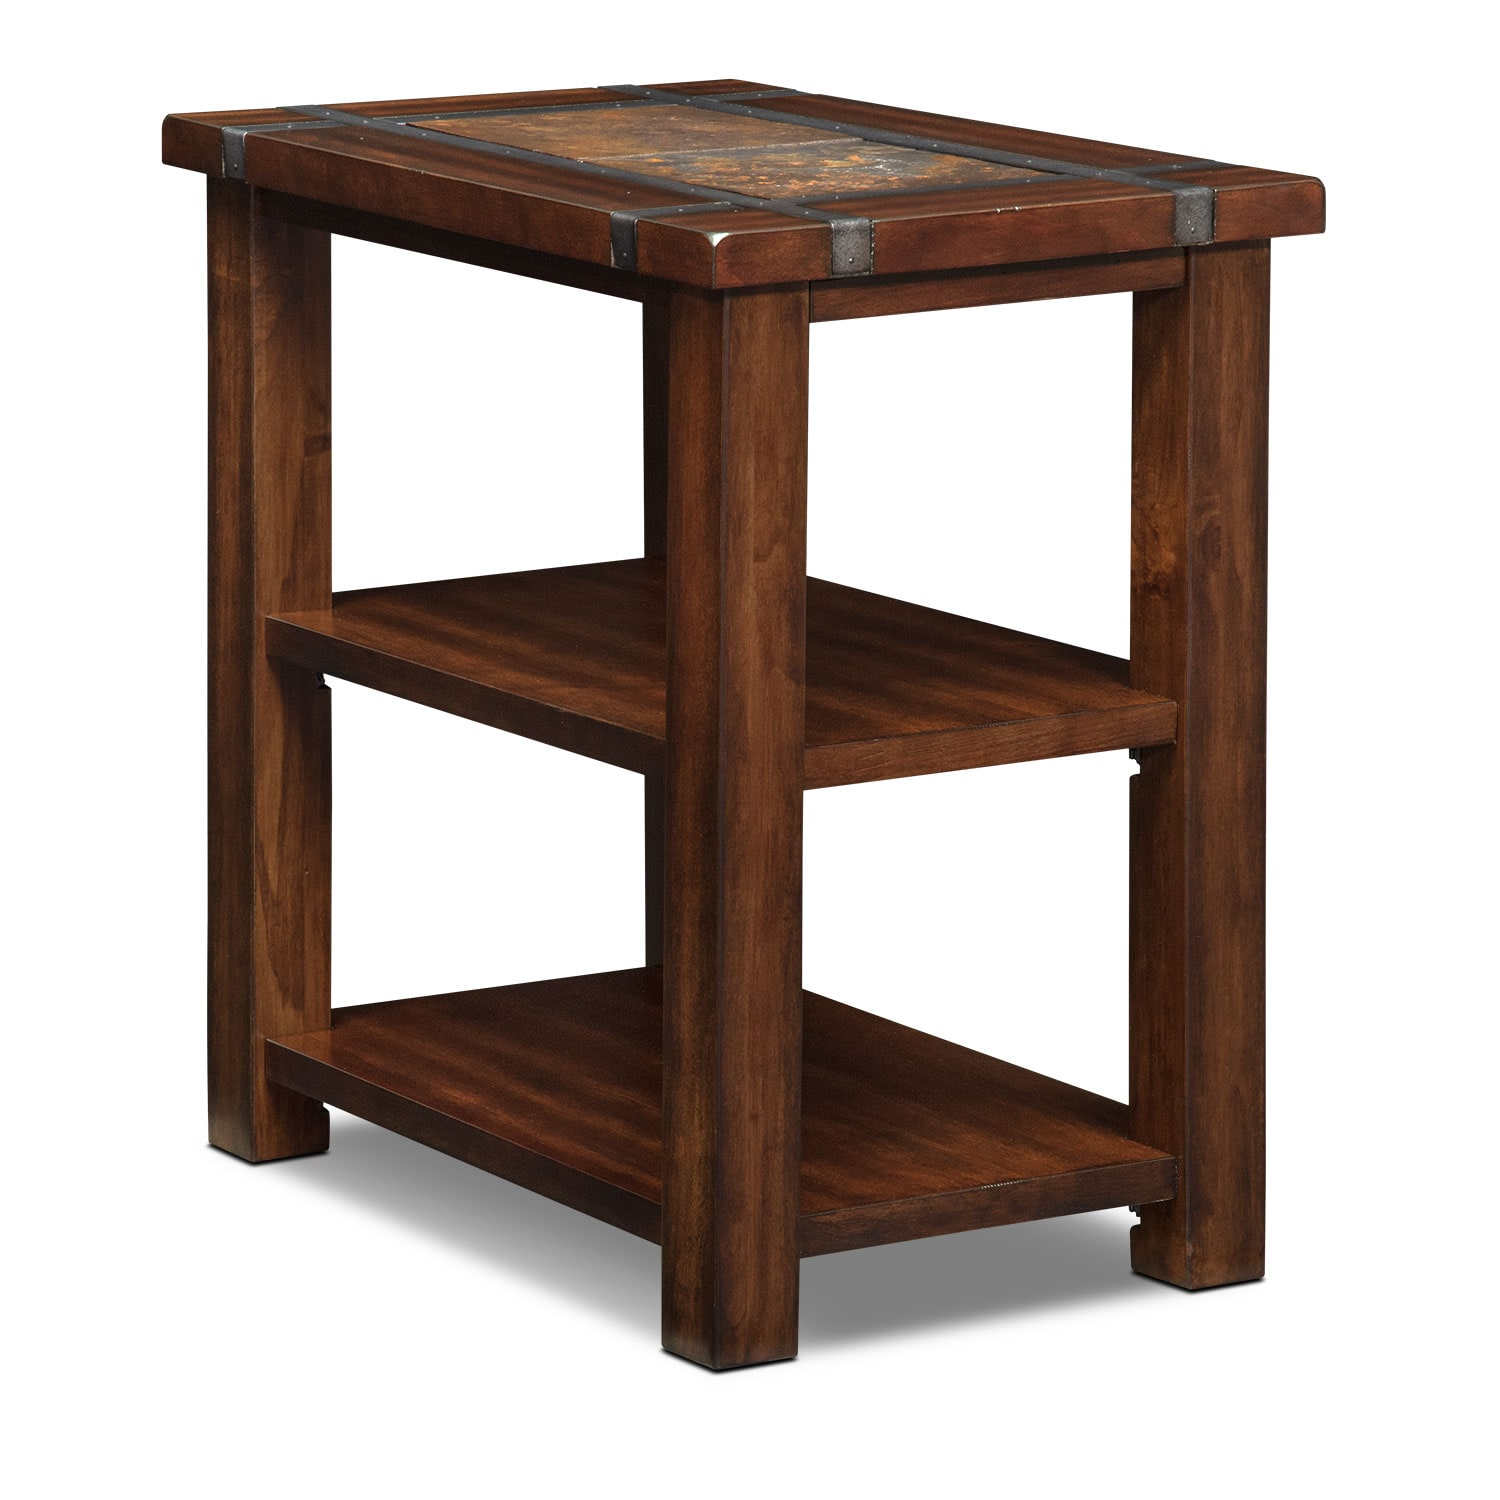 Slate ridge chairside table cherry value city furniture for Chairside table